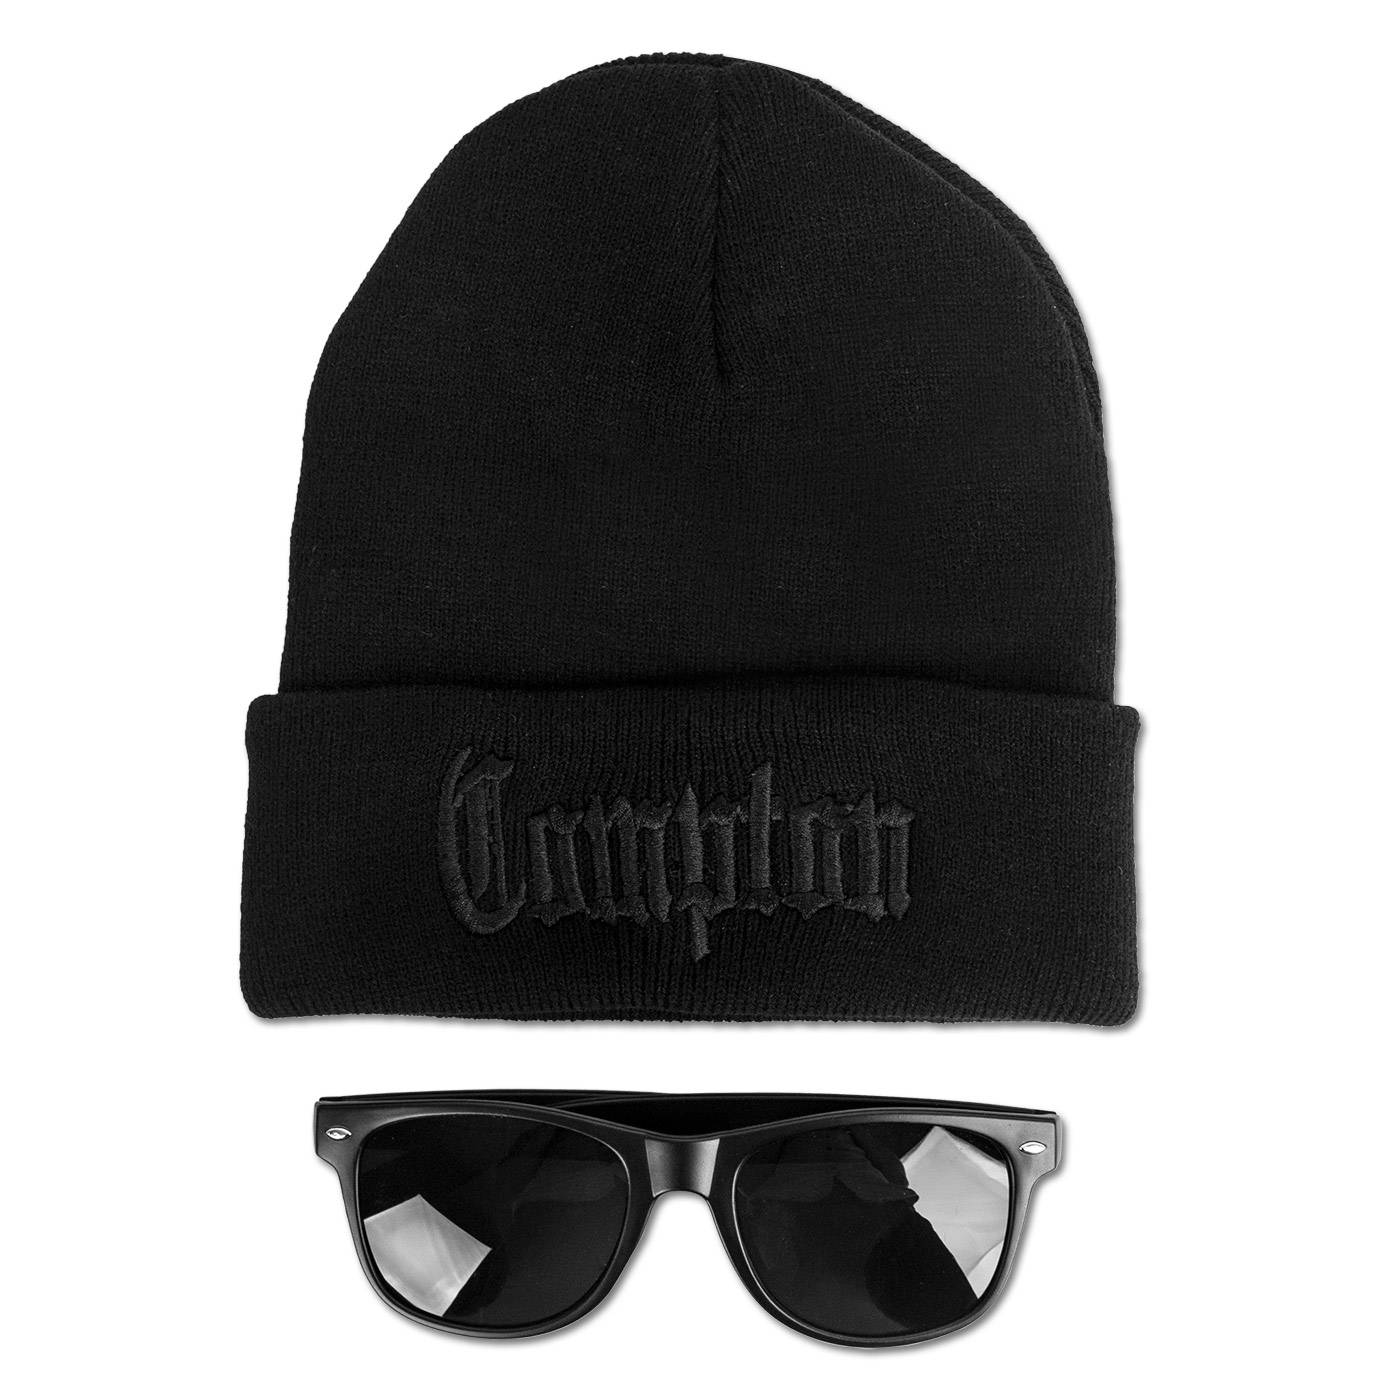 Includes snapback hat, black beanie, and black sunglass Compton Bundle Pack